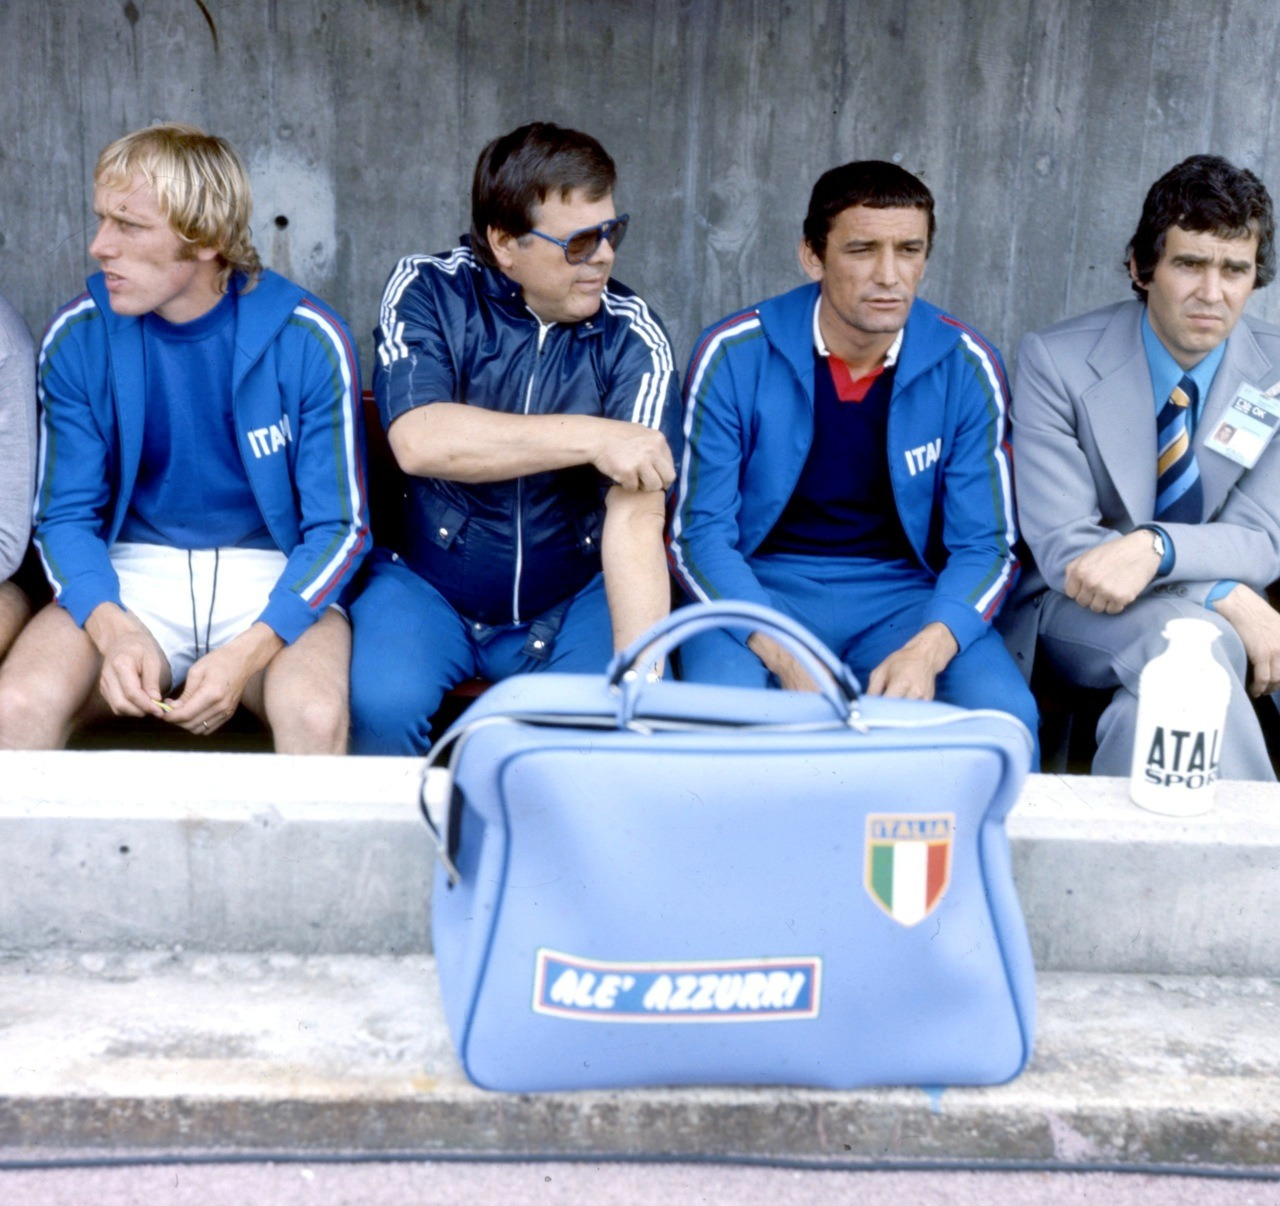 interleaning:  Luciano Re Cecconi and Gigi Riva on the bench, World Cup 1974.